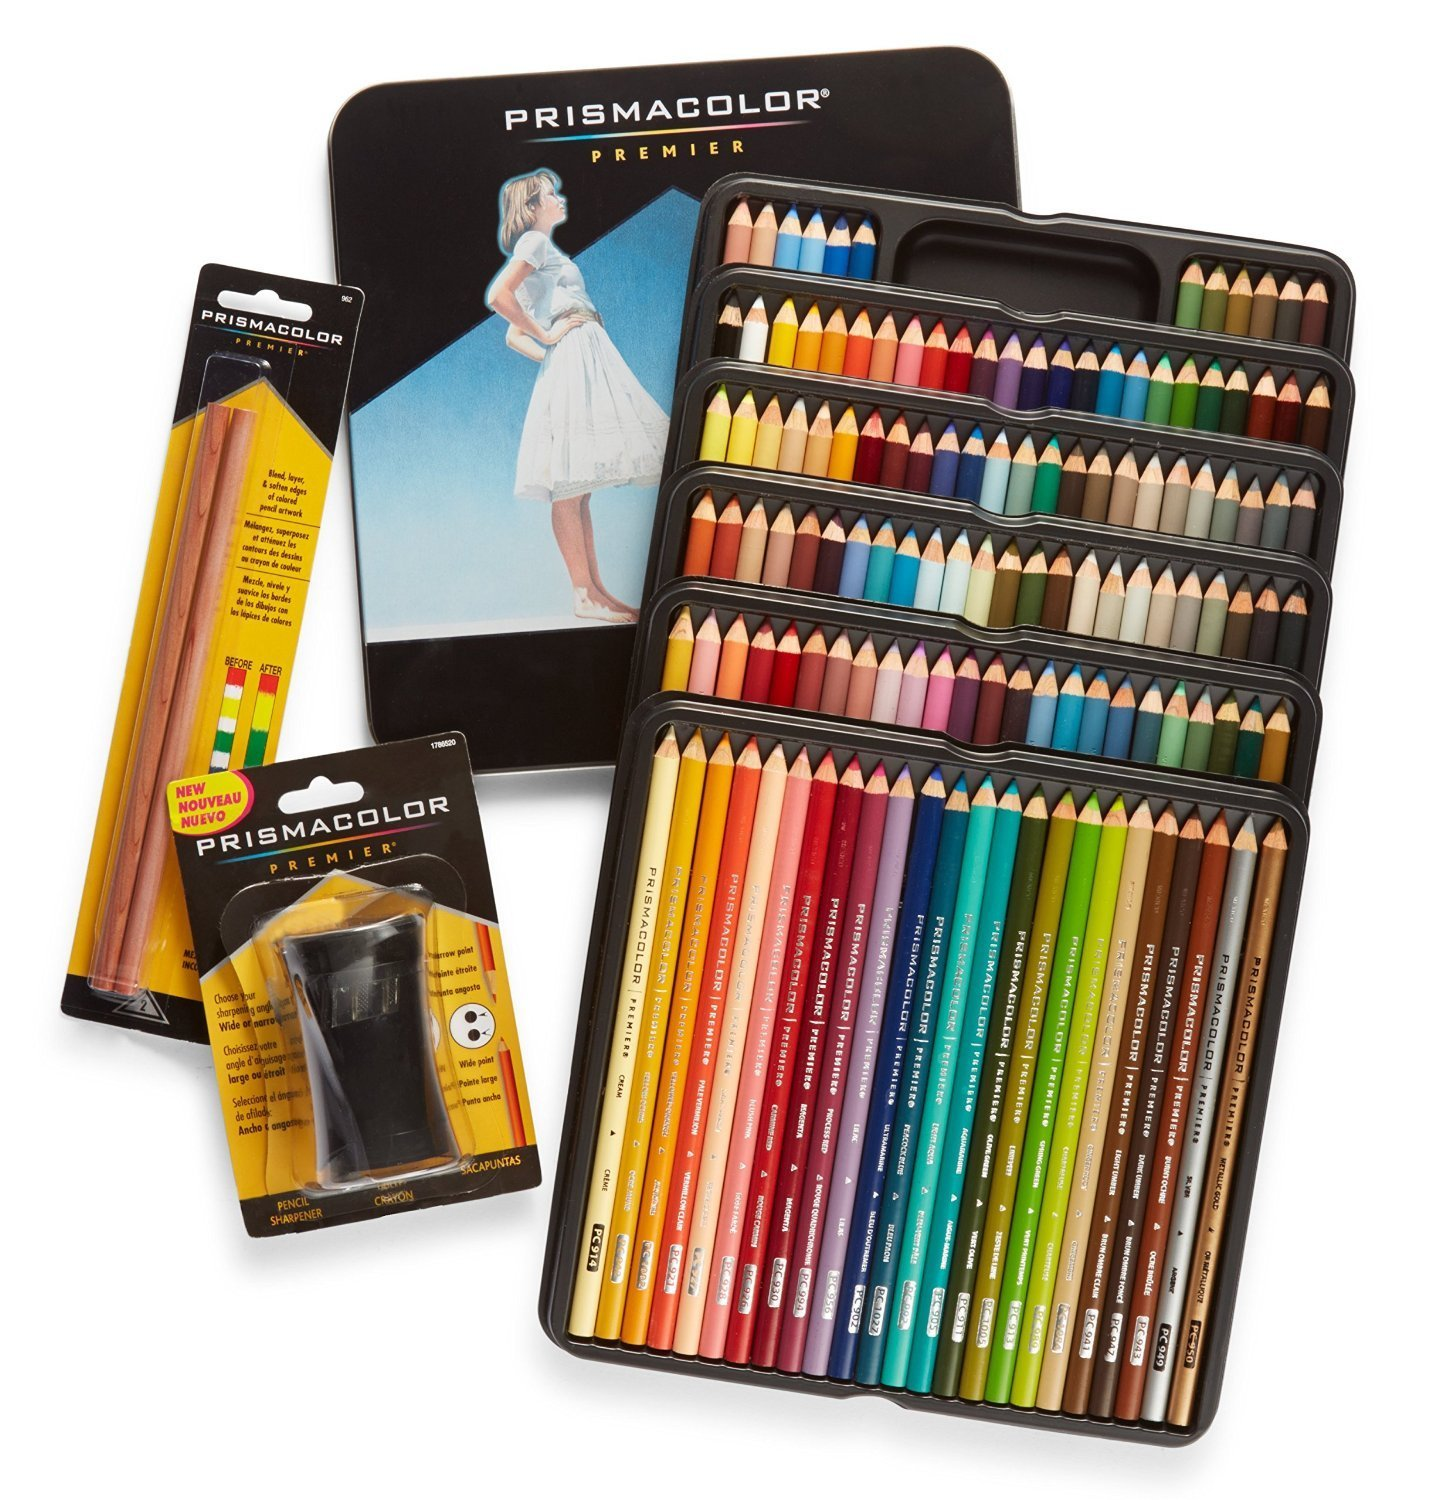 Prismacolor Premier Colored Pencils, Soft Core, 132 Pack (4484) with 2 Blender Pencils (962) & Pencil Sharpener (1786520)